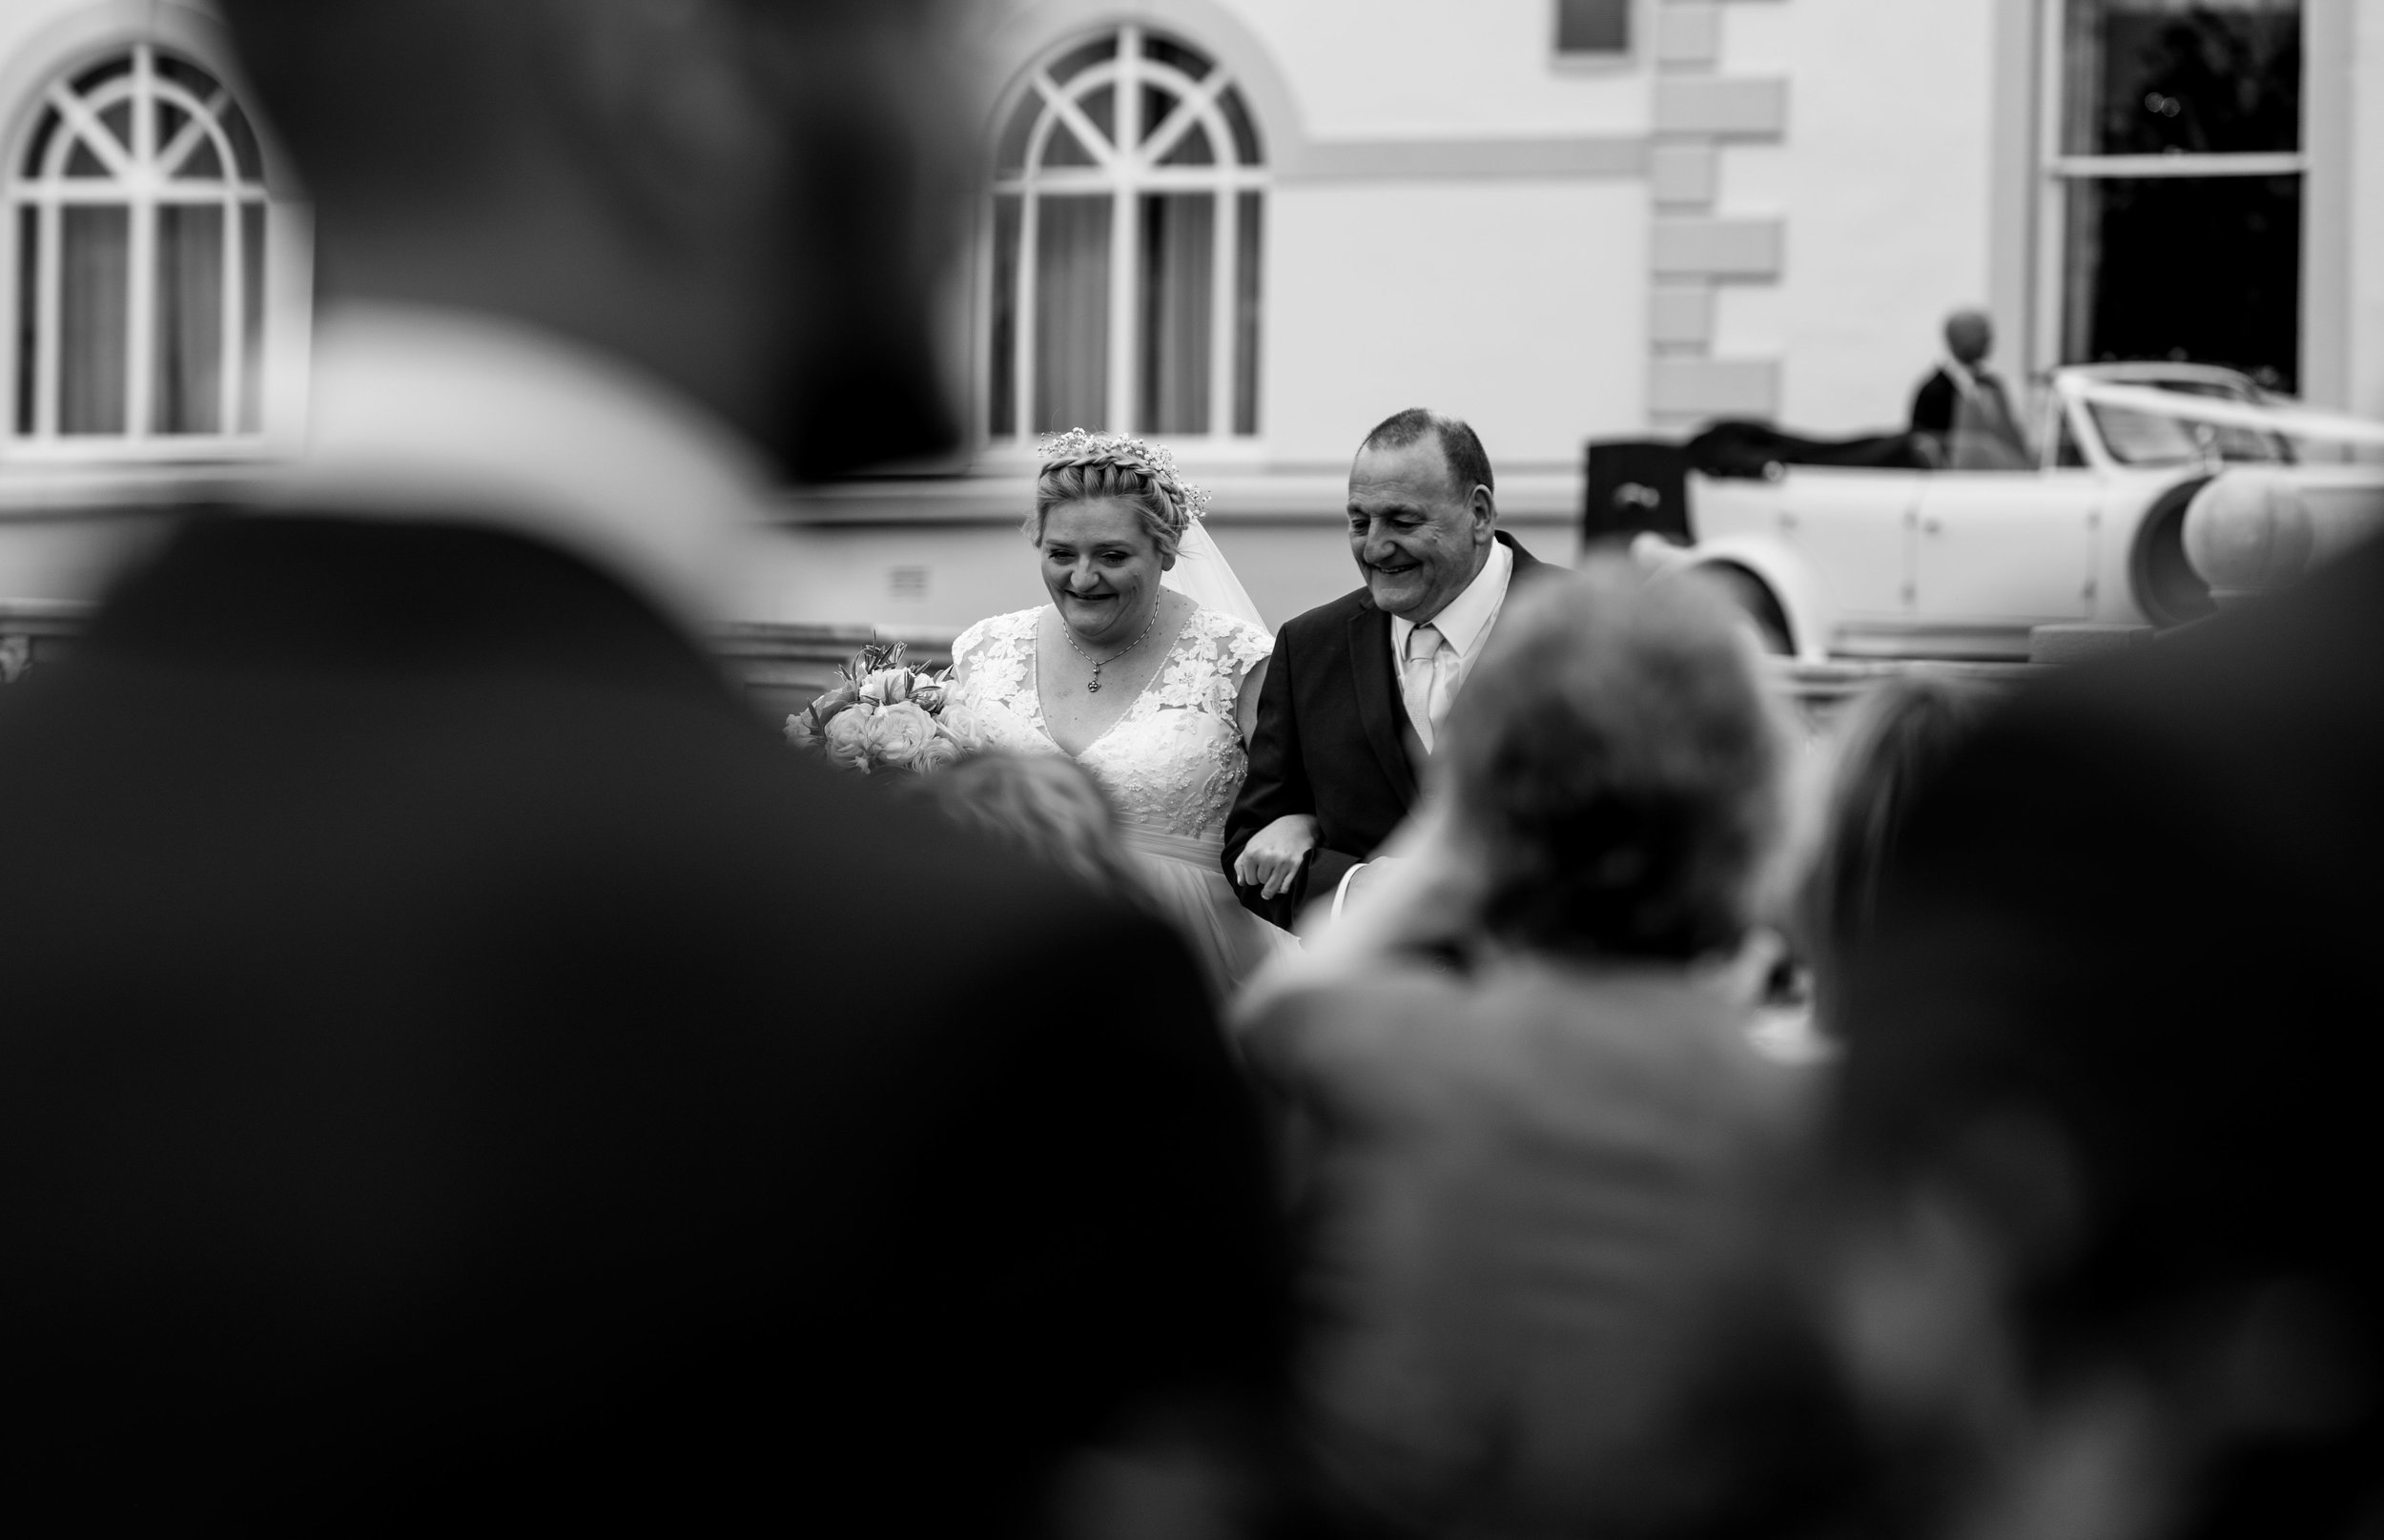 A smiling bride and her father walk down the path to the wedding ceremony